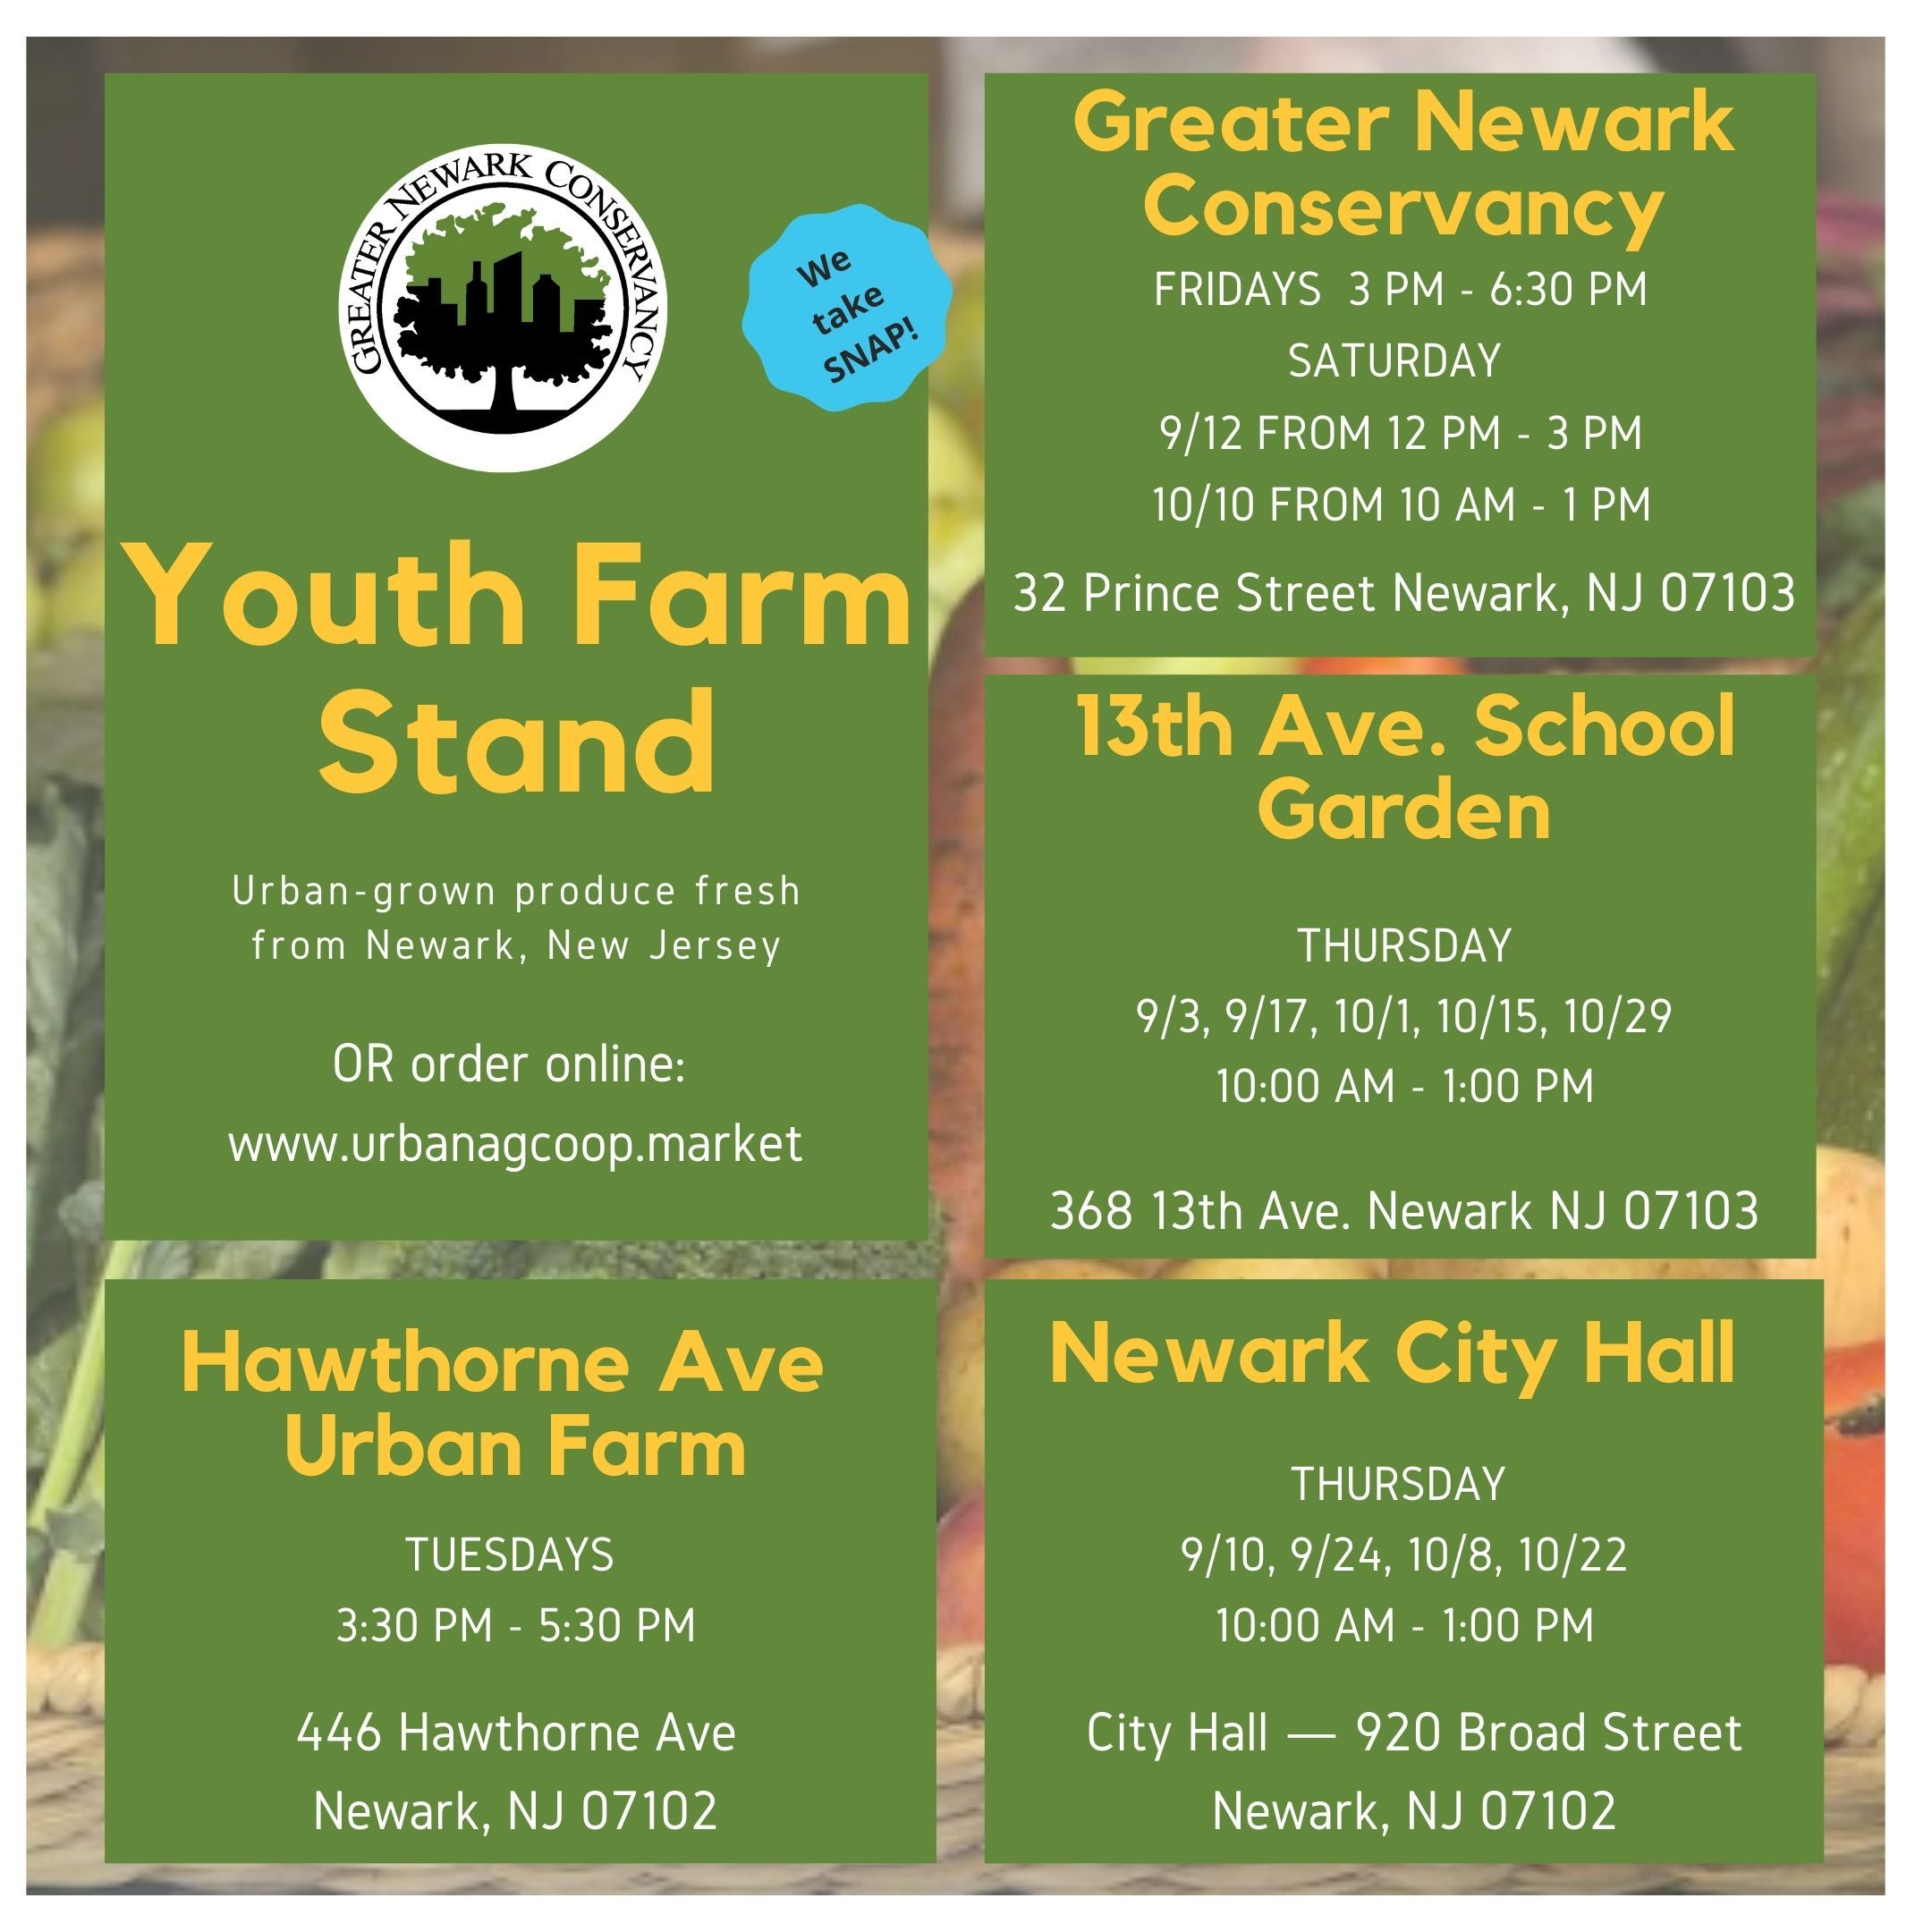 Youth Farm Stand